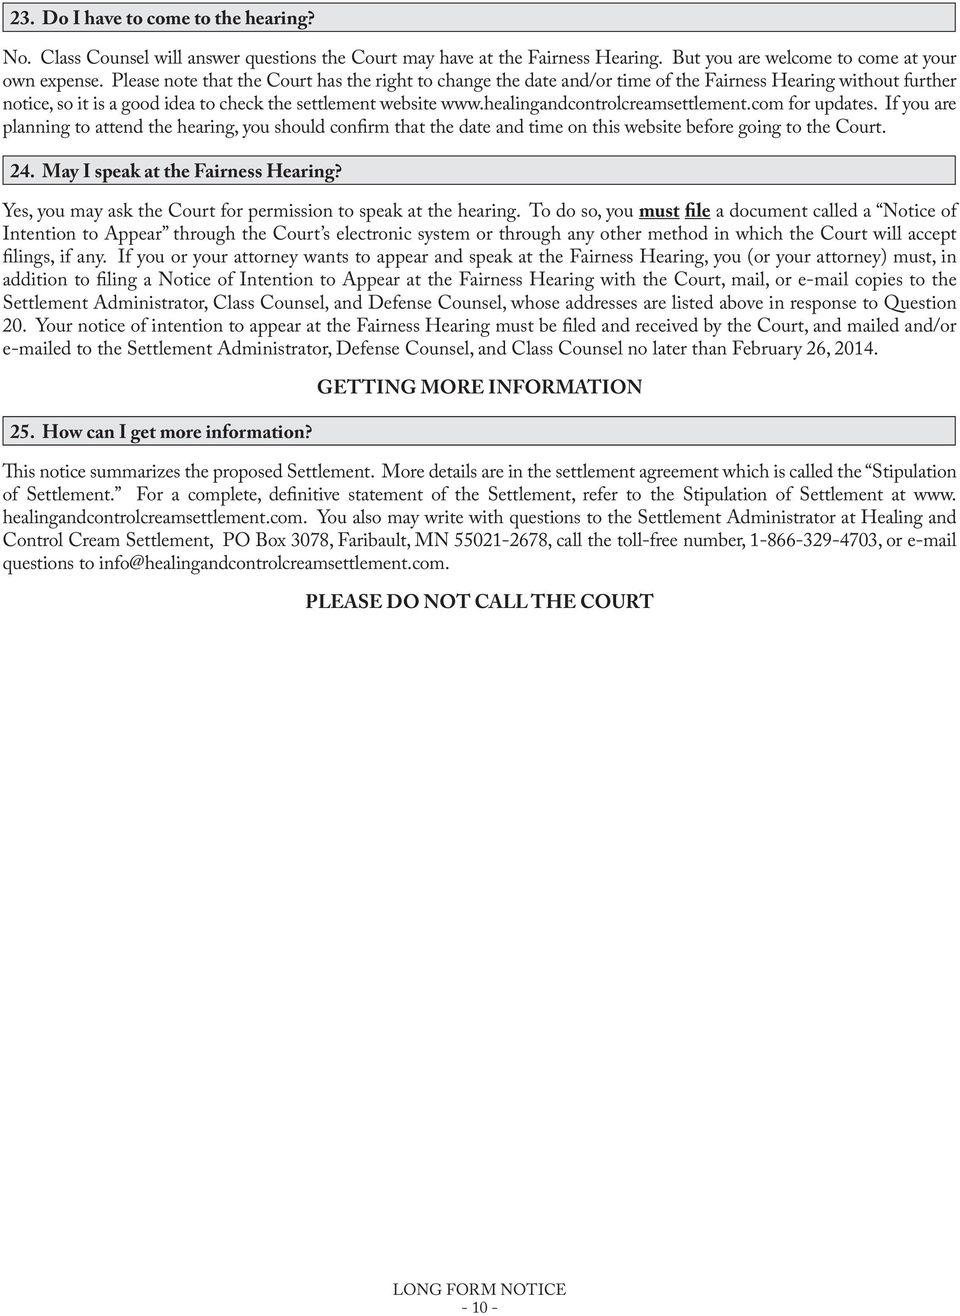 healingandcontrolcreamsettlement.com for updates. If you are planning to attend the hearing, you should confirm that the date and time on this website before going to the Court. 24.